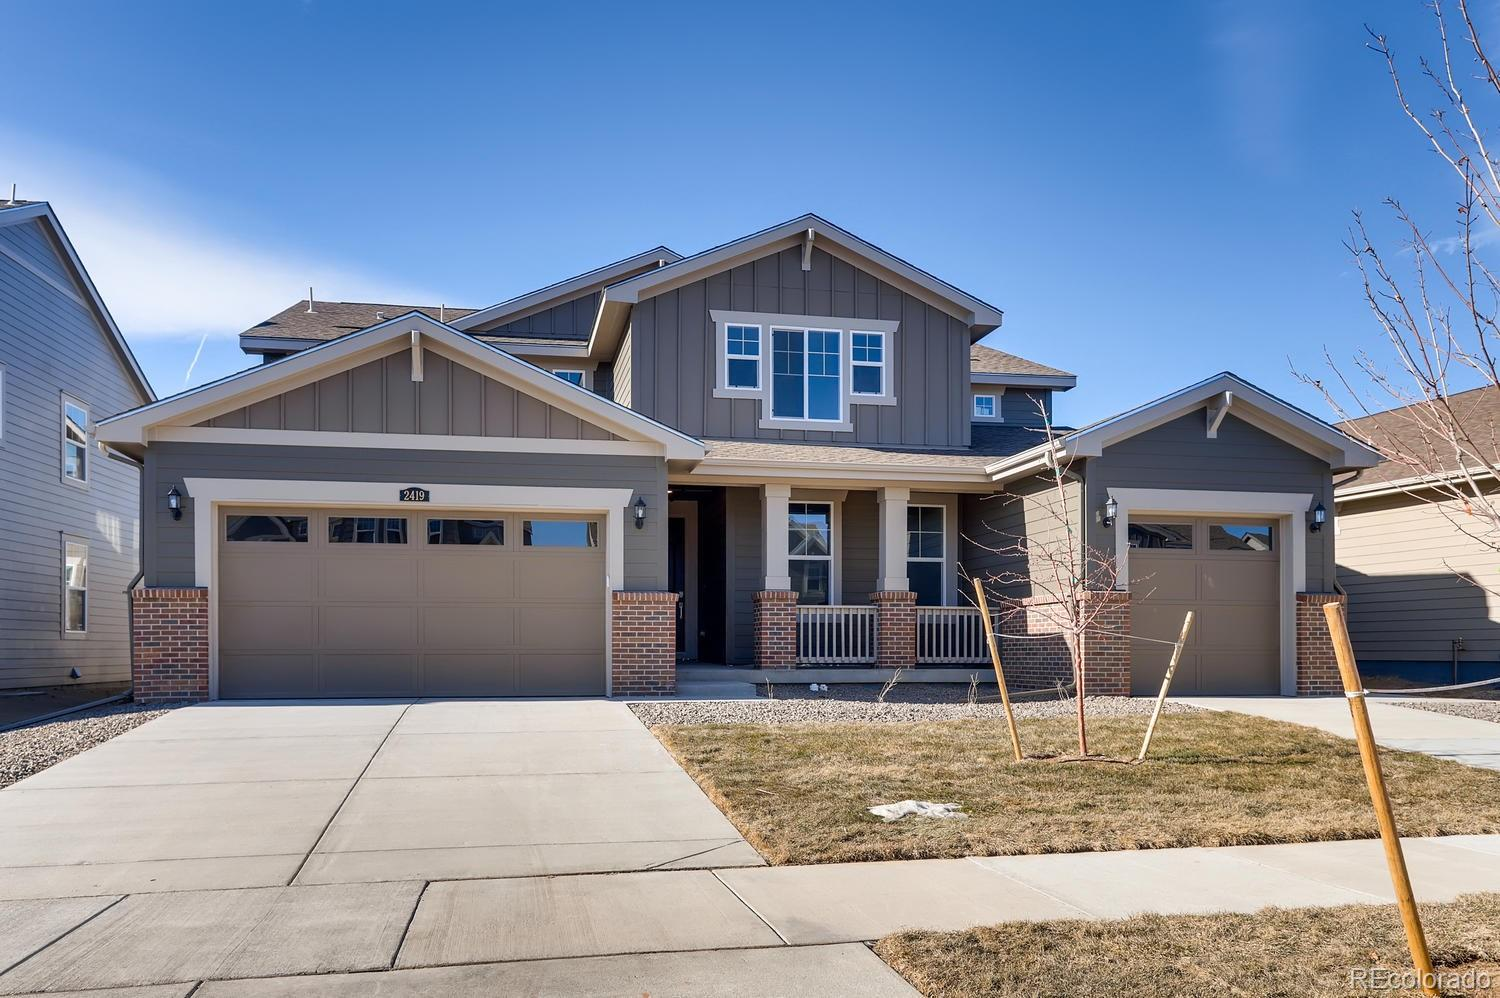 Available in January 2020! Colorado living at its finest! This stunning Superhome in the brand new Provenance community features a total of 6 beds & 4.5 baths - 5 beds/3.5 baths in the main home along with a great room, nook, spacious kitchen,  large loft AND 1 bed, 1 bath, kitchenette and retreat in the secondary suite.   Covered deck, extended hardwood, upgraded carpet and tile.Separate entrances and garages for each along with access from the main home to the secondary suite. Faces East. An open basement is waiting for future expansion. Conveniently located close to shopping, dining, entertainment, transportation and acres of parks/trails and other great outdoor opportunities. Easy commute to Downtown Denver, Boulder, Golden and beyond. Don't wait - this home will sell quickly. Lives large and luxurious.